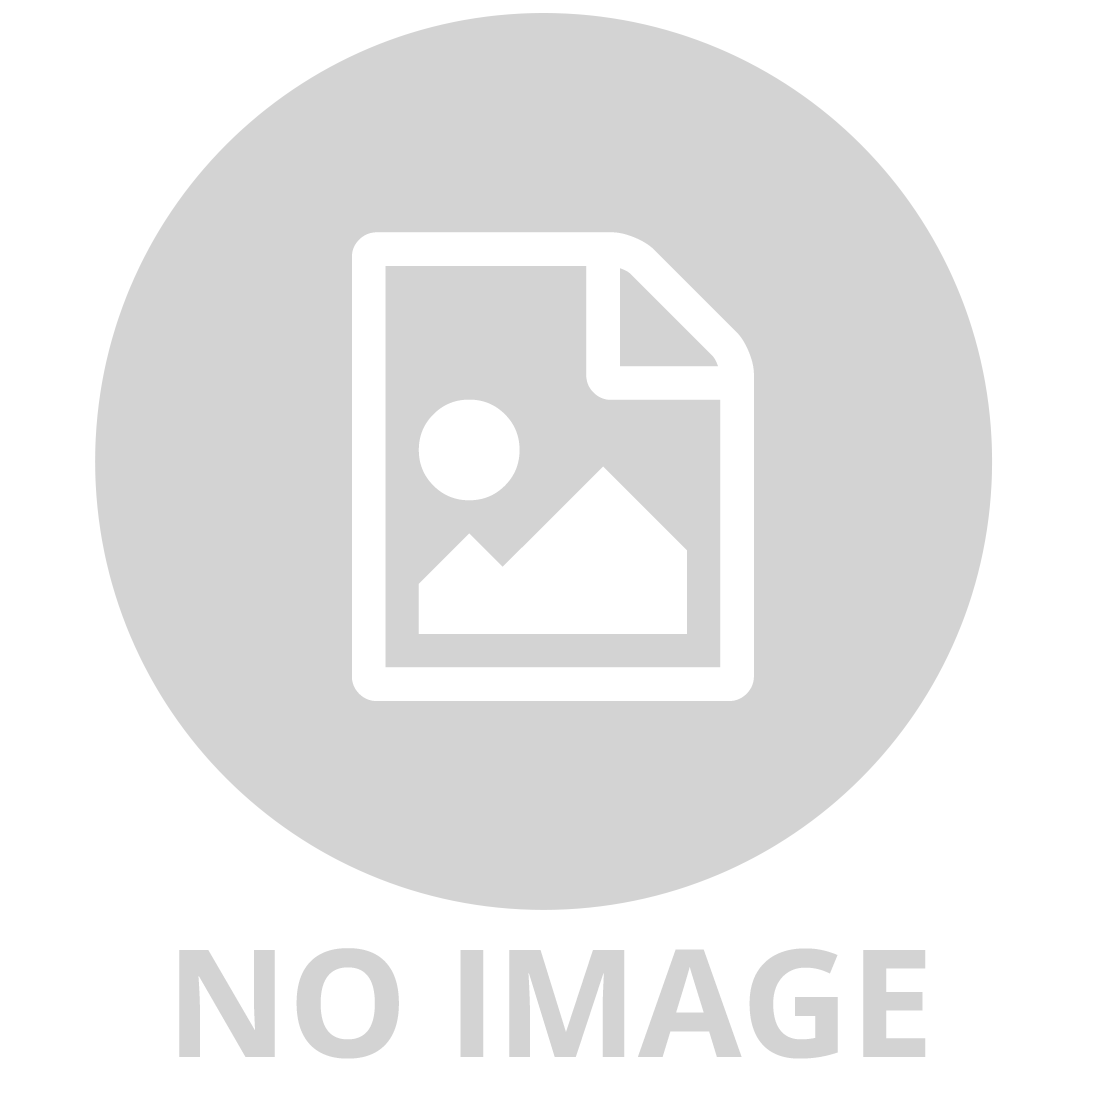 FIRST LEARNING WOODEN FIGURE 8 TRAIN SET 35 PIECE